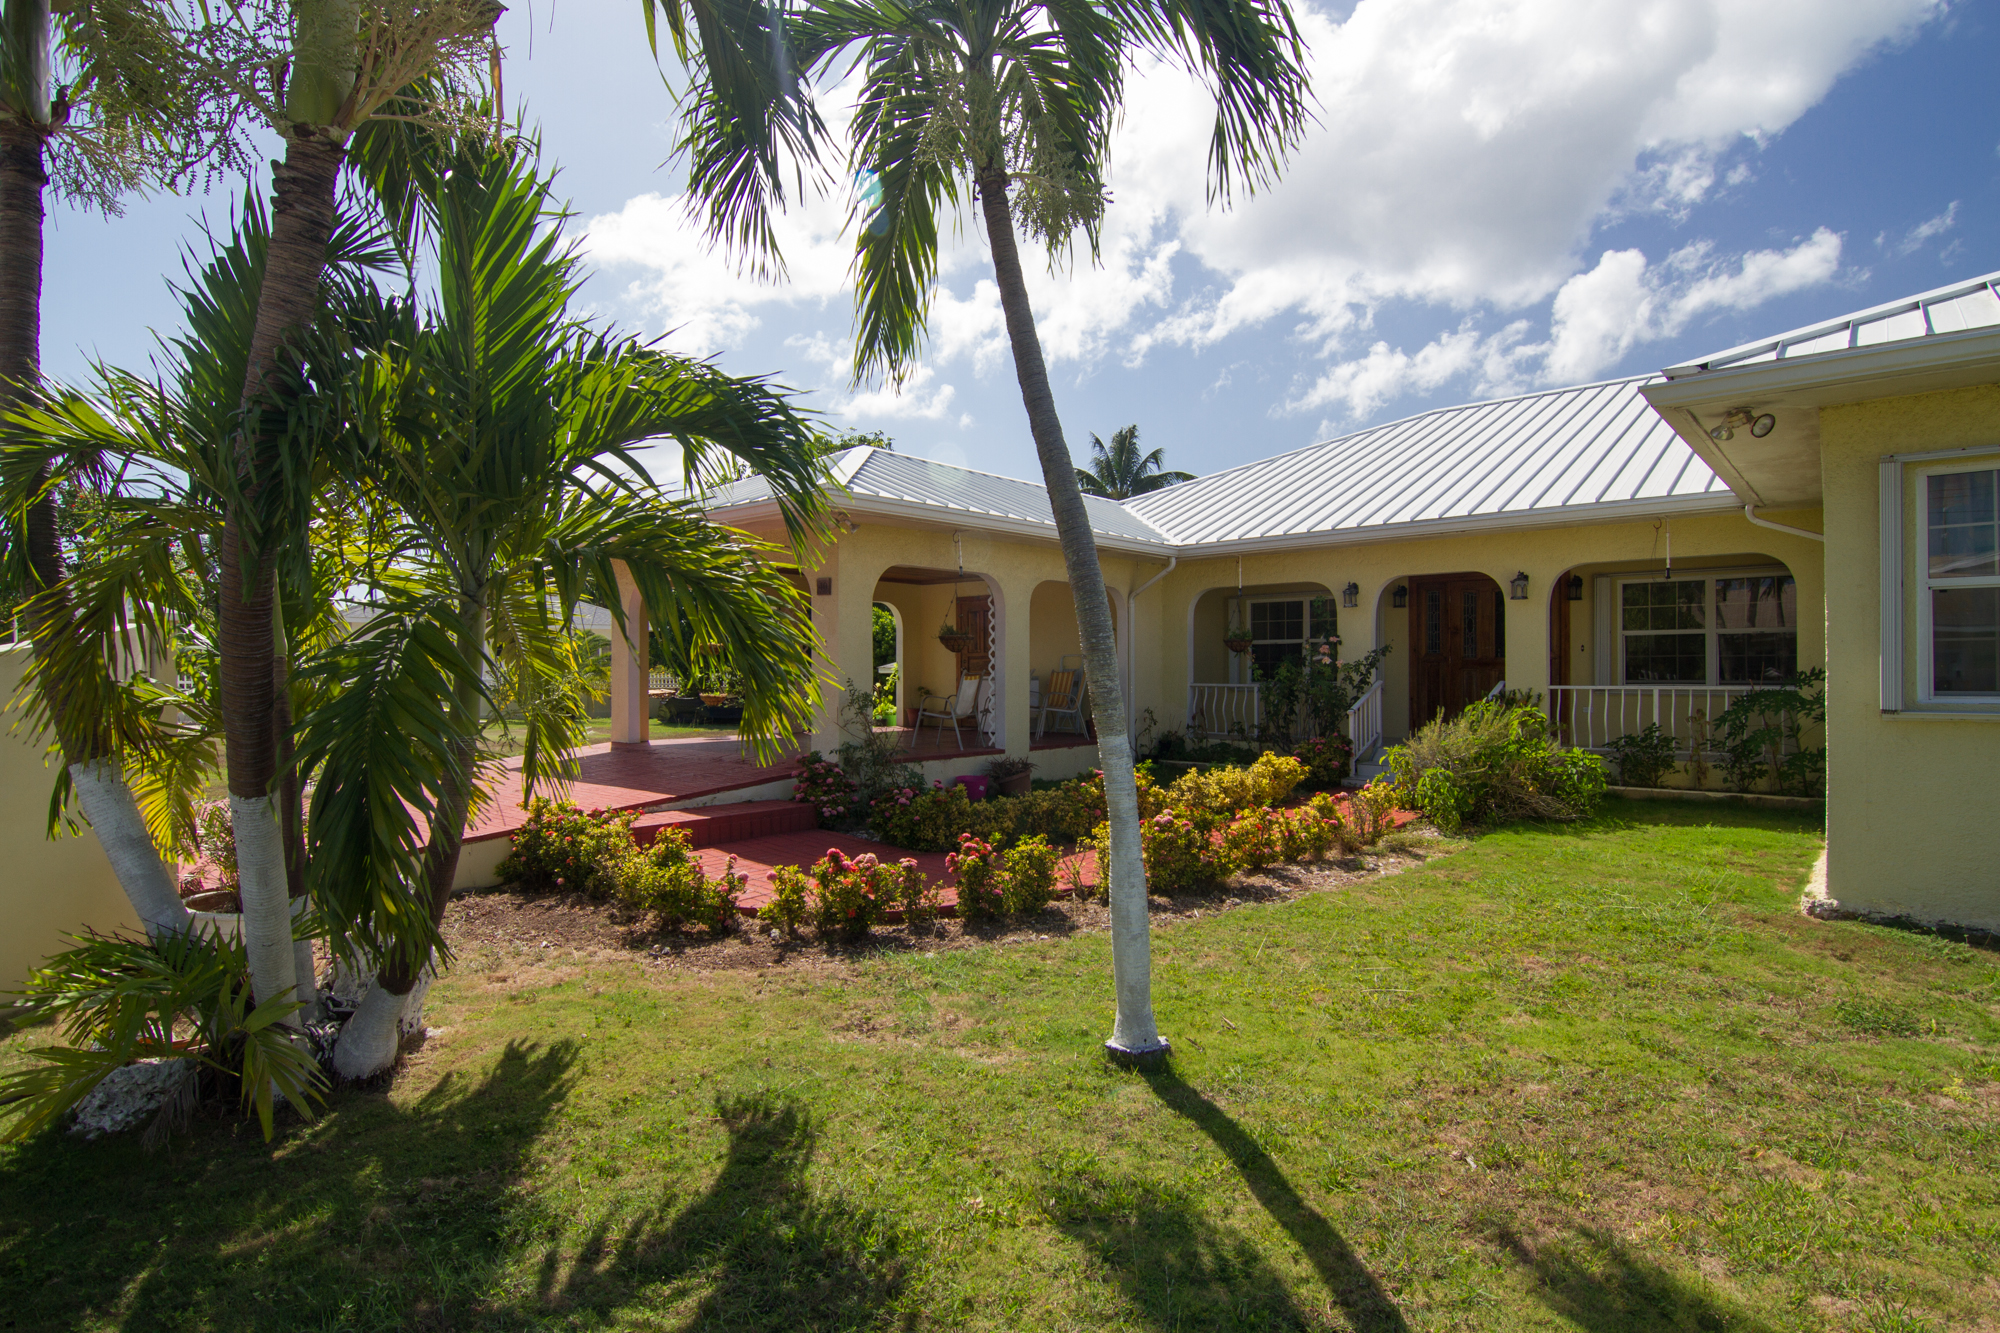 Single Family Home for Sale at Music Close family home George Town, Grand Cayman, KY1 Cayman Islands